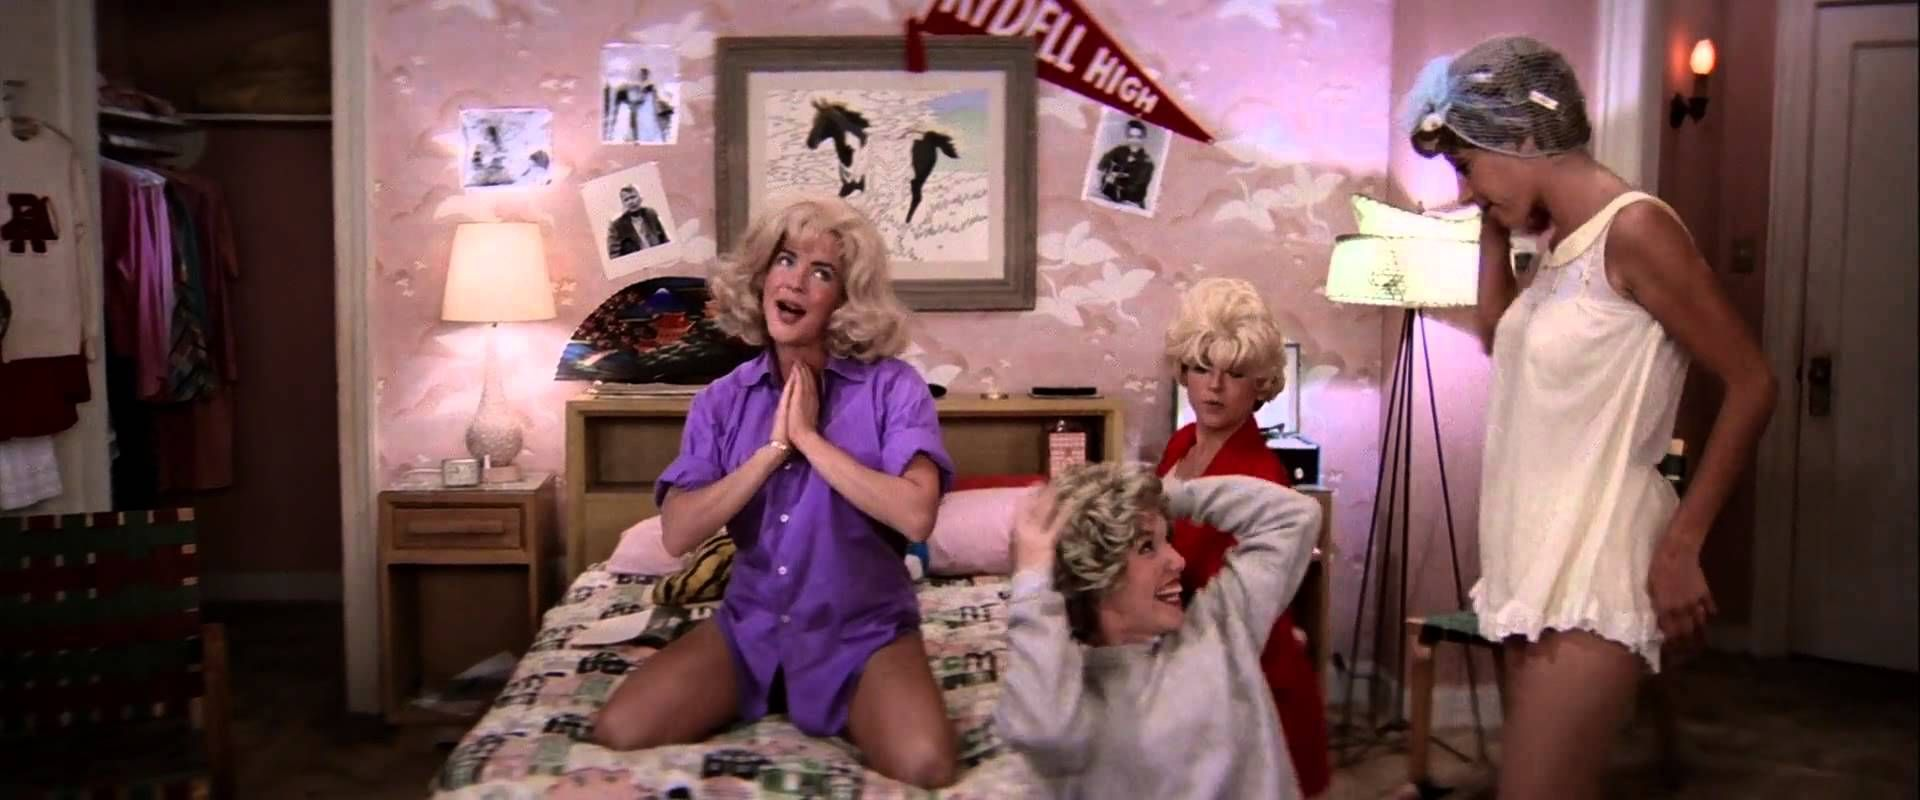 Look at me i m sandra dee lousy with virginity